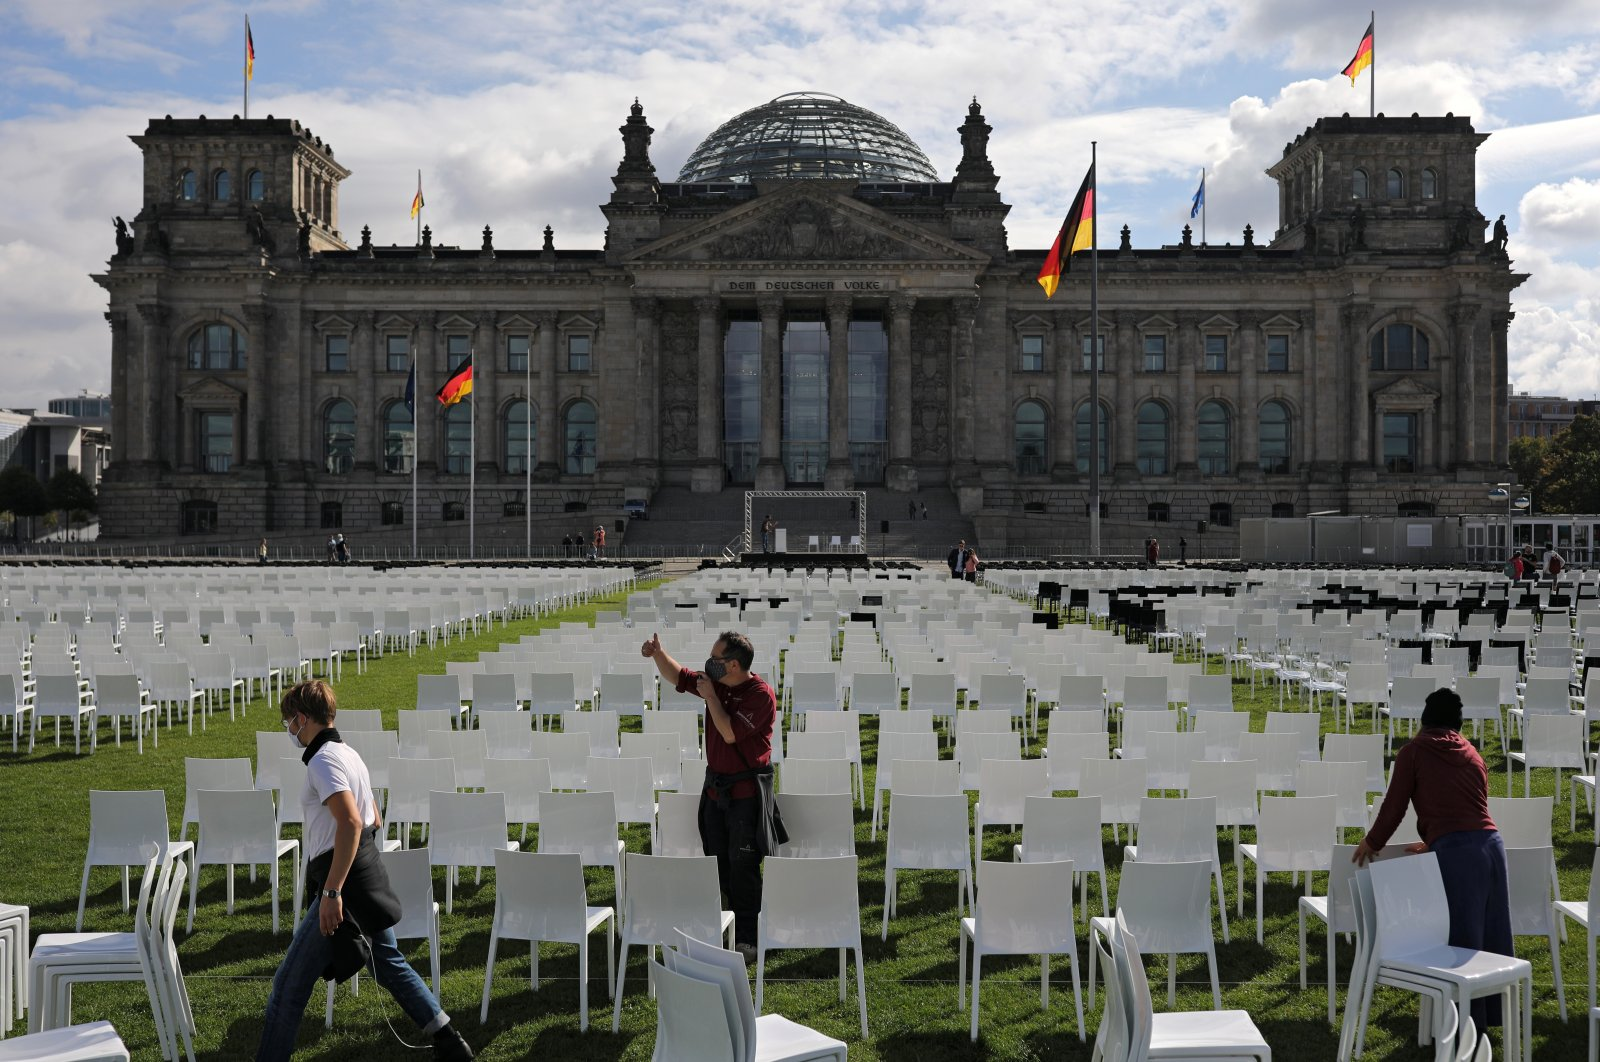 Activists set up empty chairs for a protest demanding the evacuation of Greek migrant camps, in front of the Reichstag building in Berlin, Germany, September 7, 2020. (Reuters Photo)